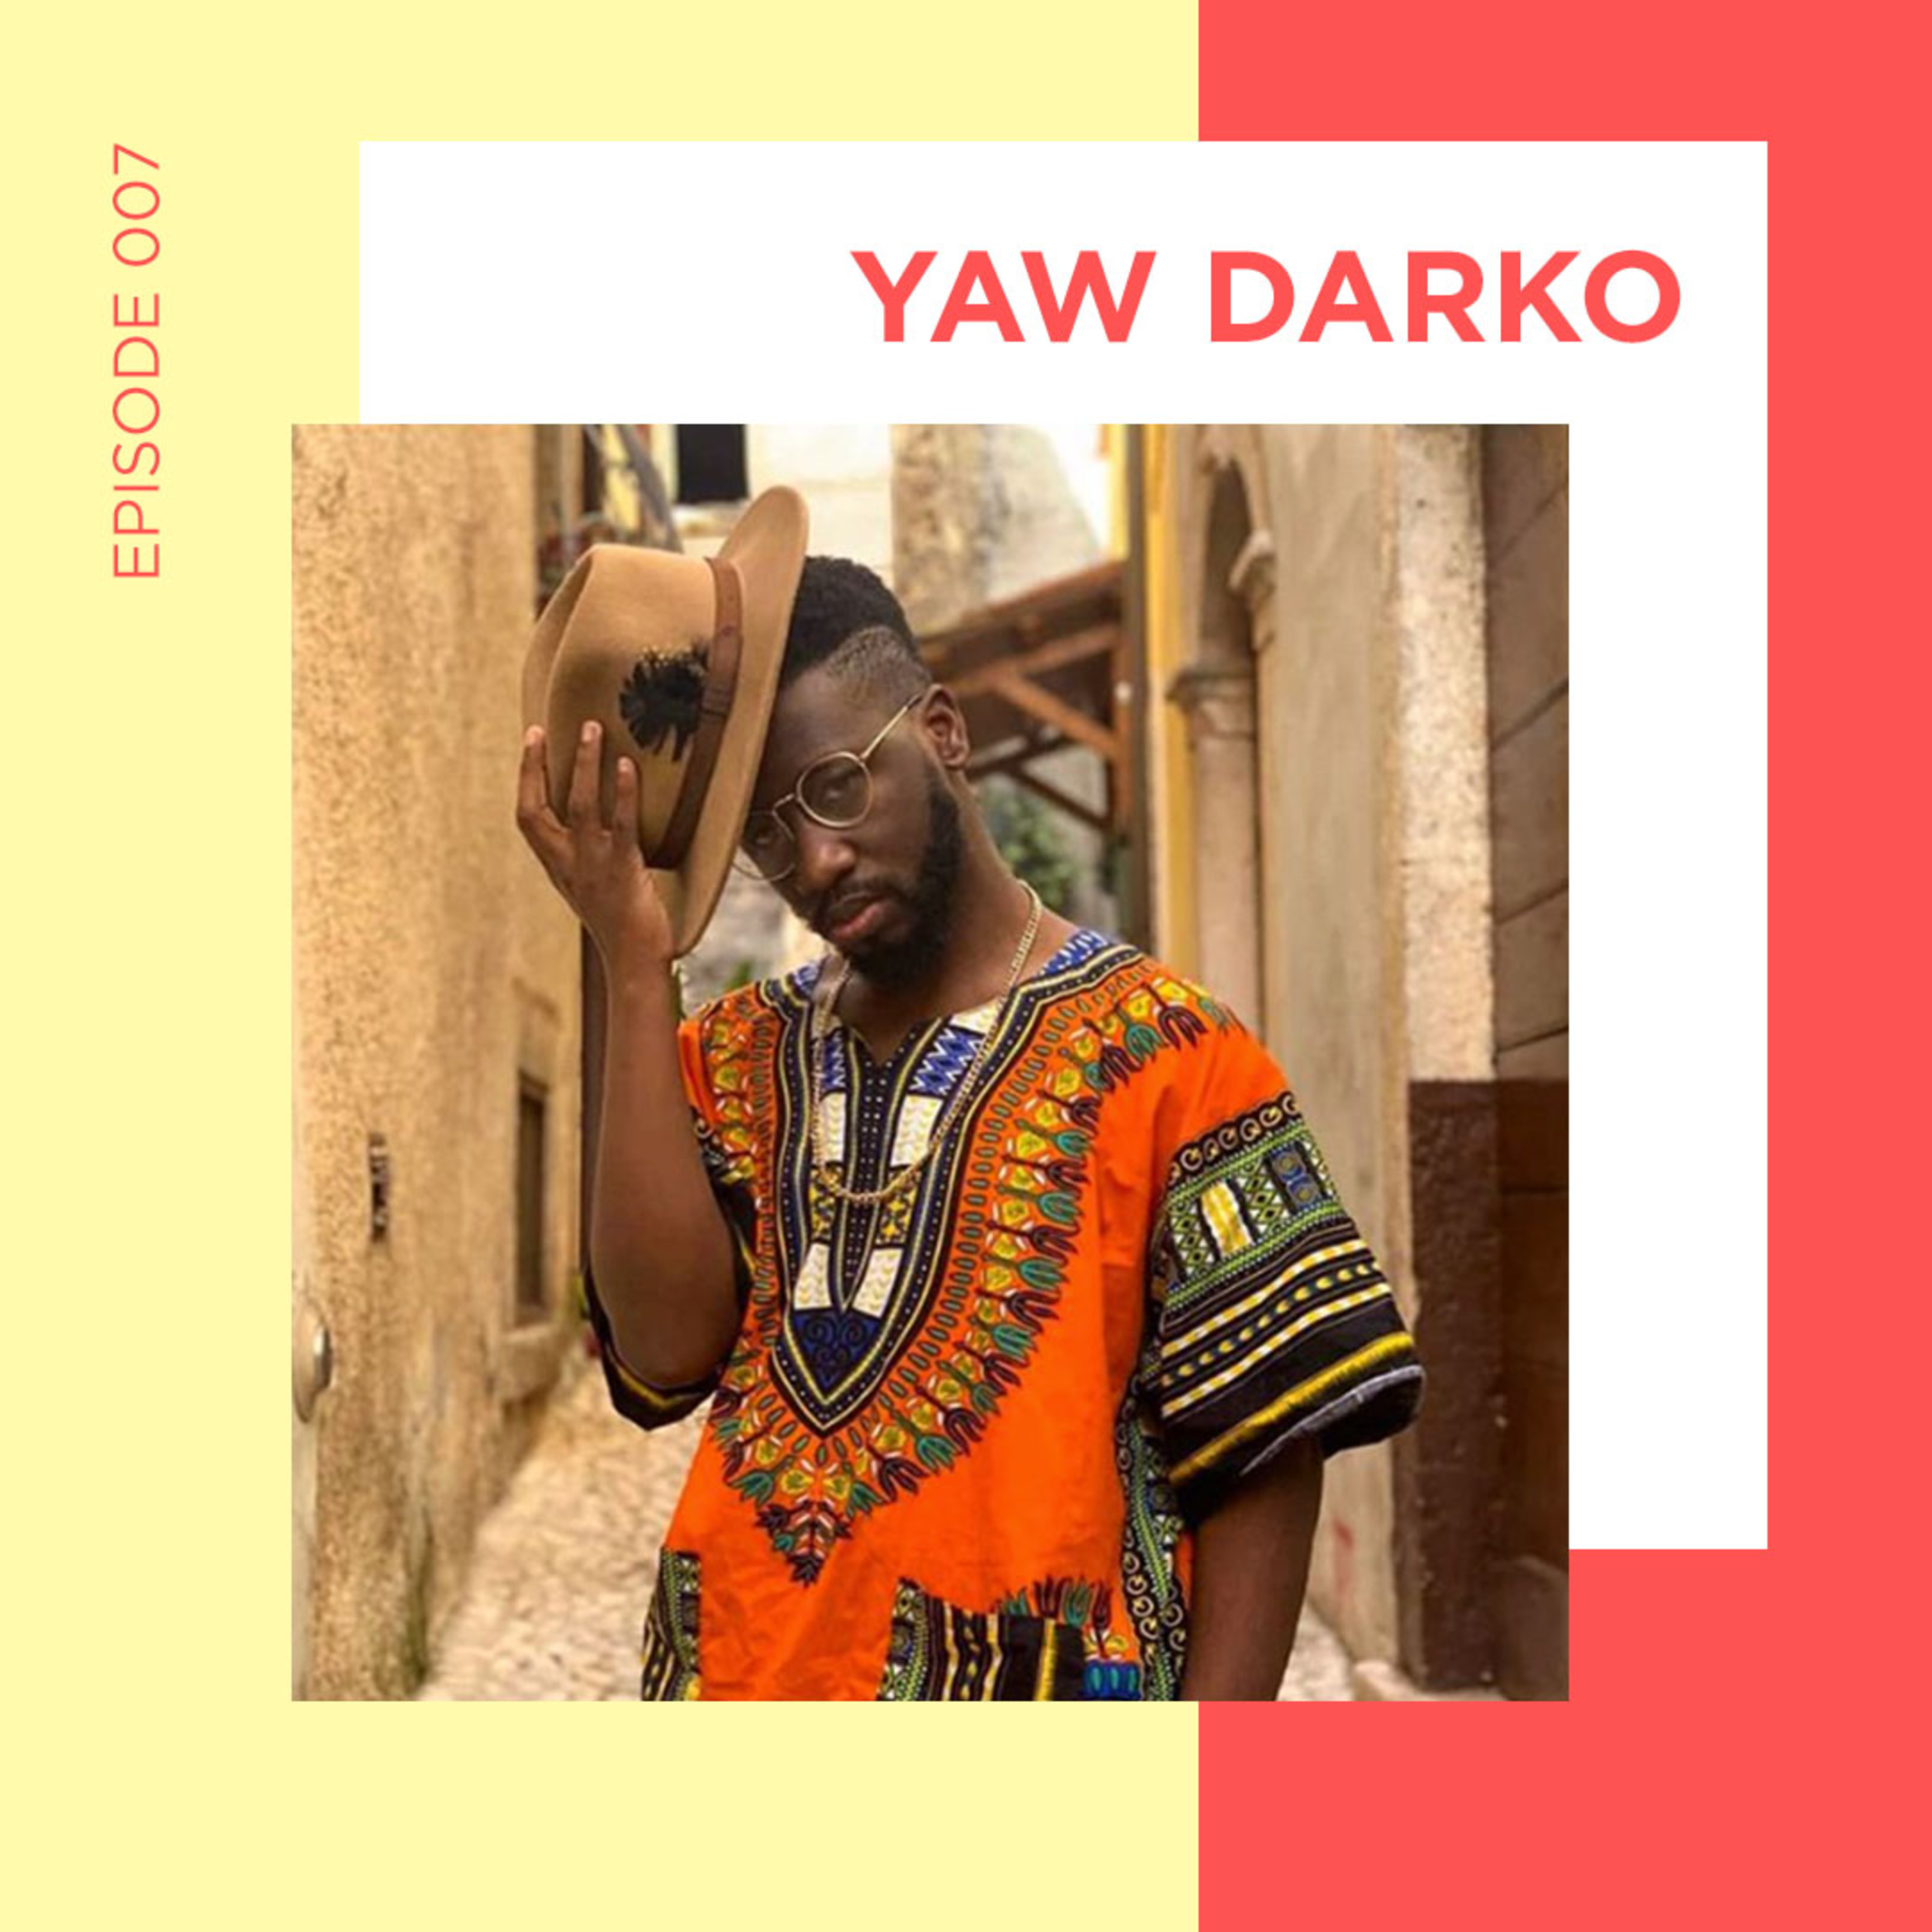 EP 7 - Name Your Top 3 Dancers with Yaw Darko